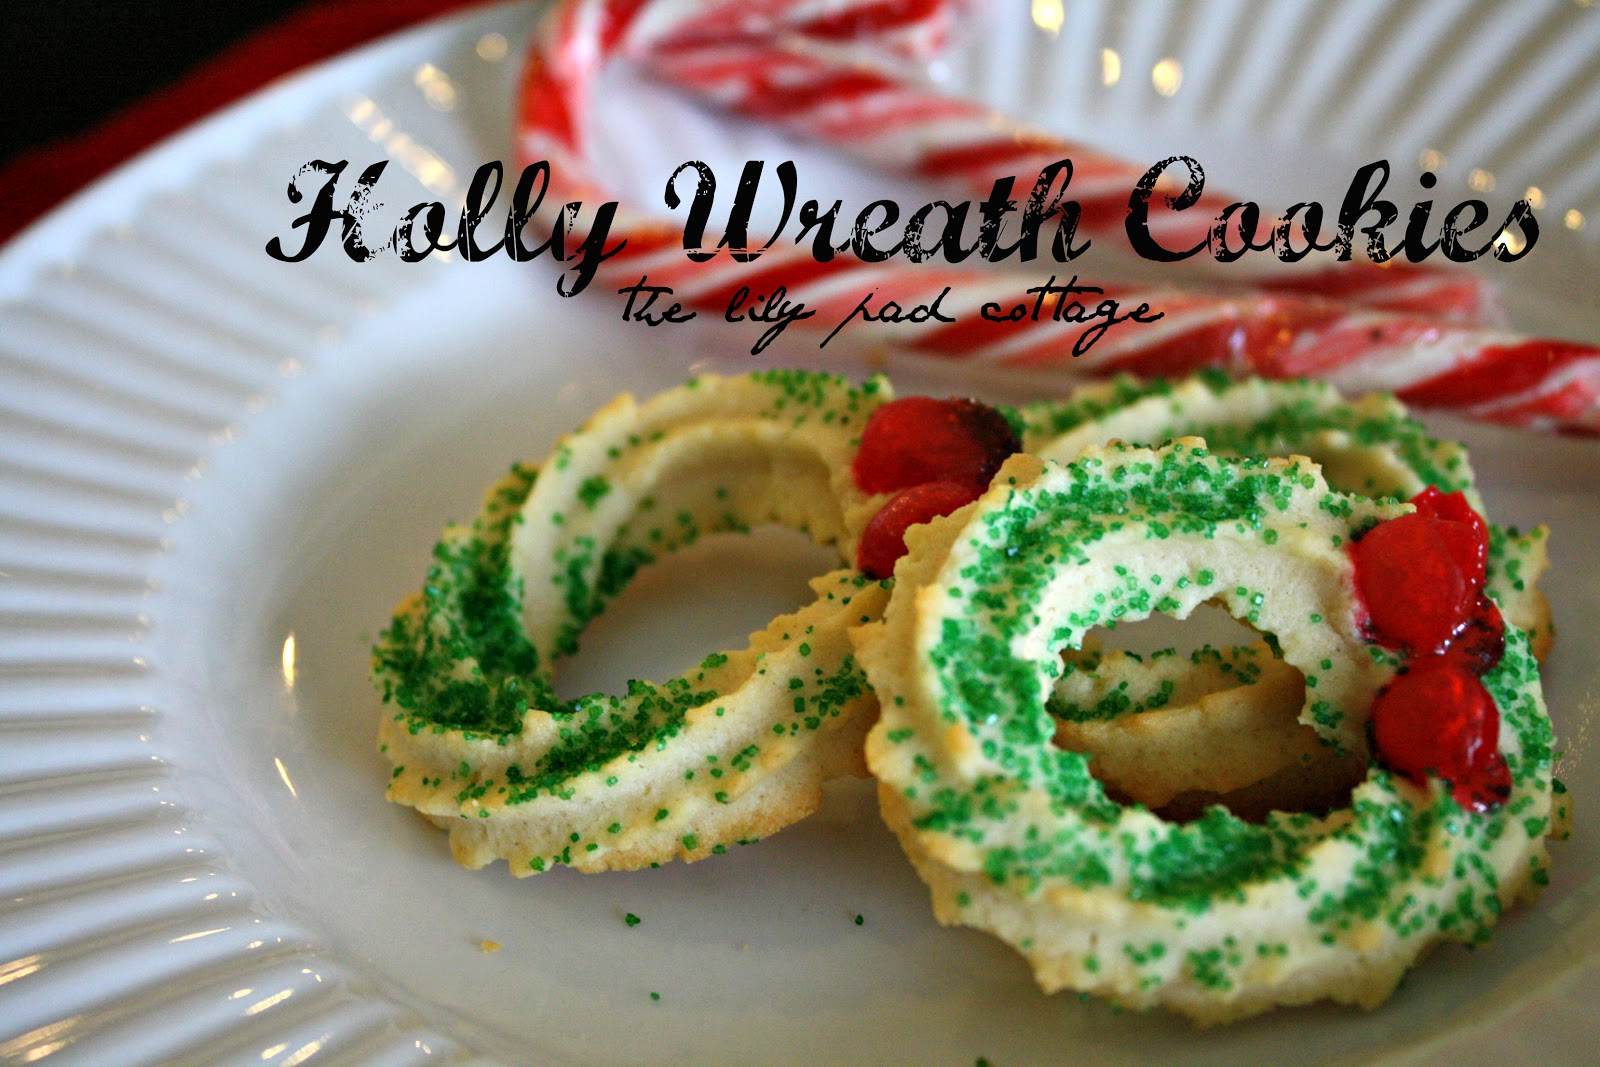 Holly Wreath Cookies The Lilypad Cottage